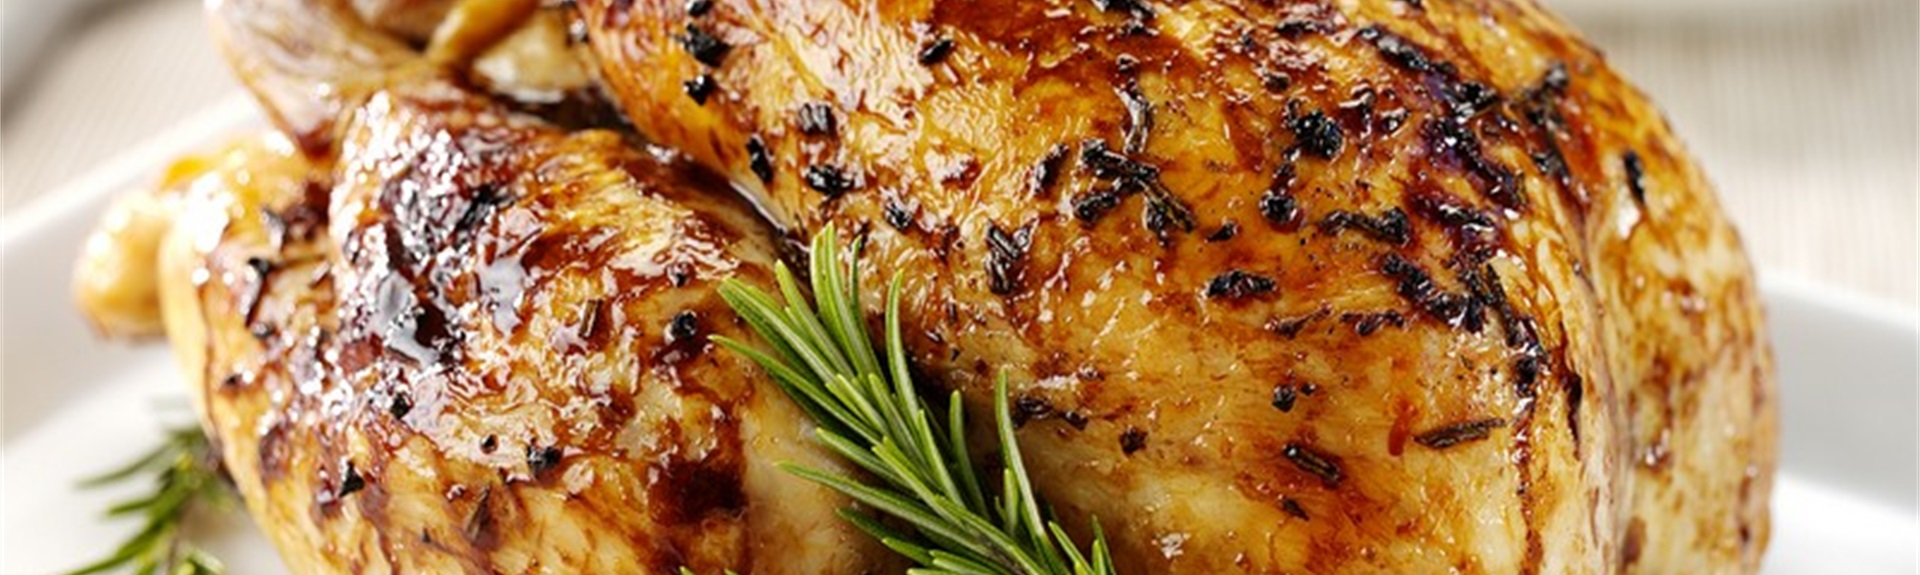 Balsamico roast chicken